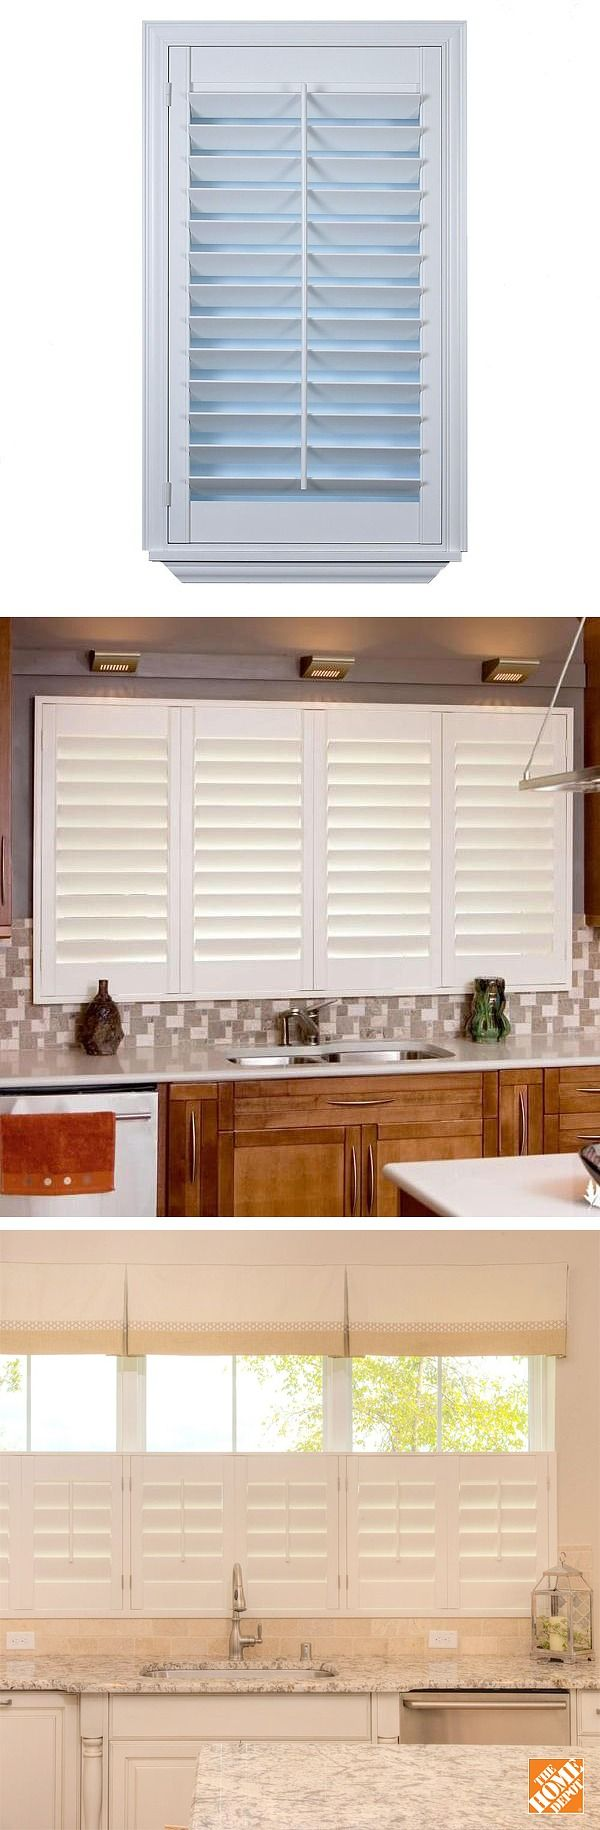 "These custom poly ""faux wood"" shutters offer the same classic look and architectural features as wood shutters, but with the added benefit of moisture resistance for high humidity areas such as bathrooms, kitchens and shower areas. We'll measure your windows for a perfect fit, and help your choose your options. Then we'll professionally install your new shutters. Click through to learn more."